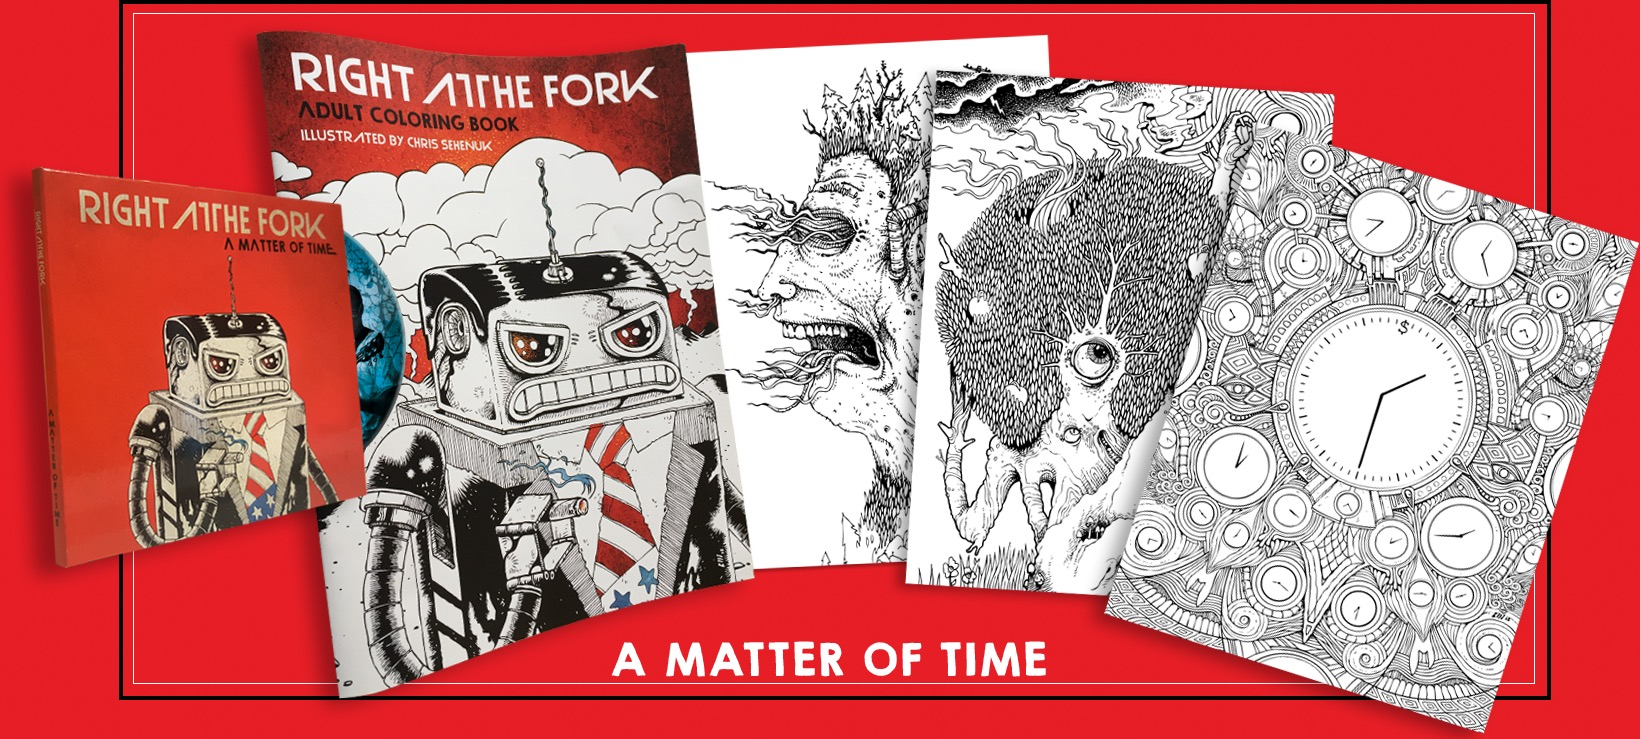 Get The Album and Get A 24 Page Coloring Book For Free